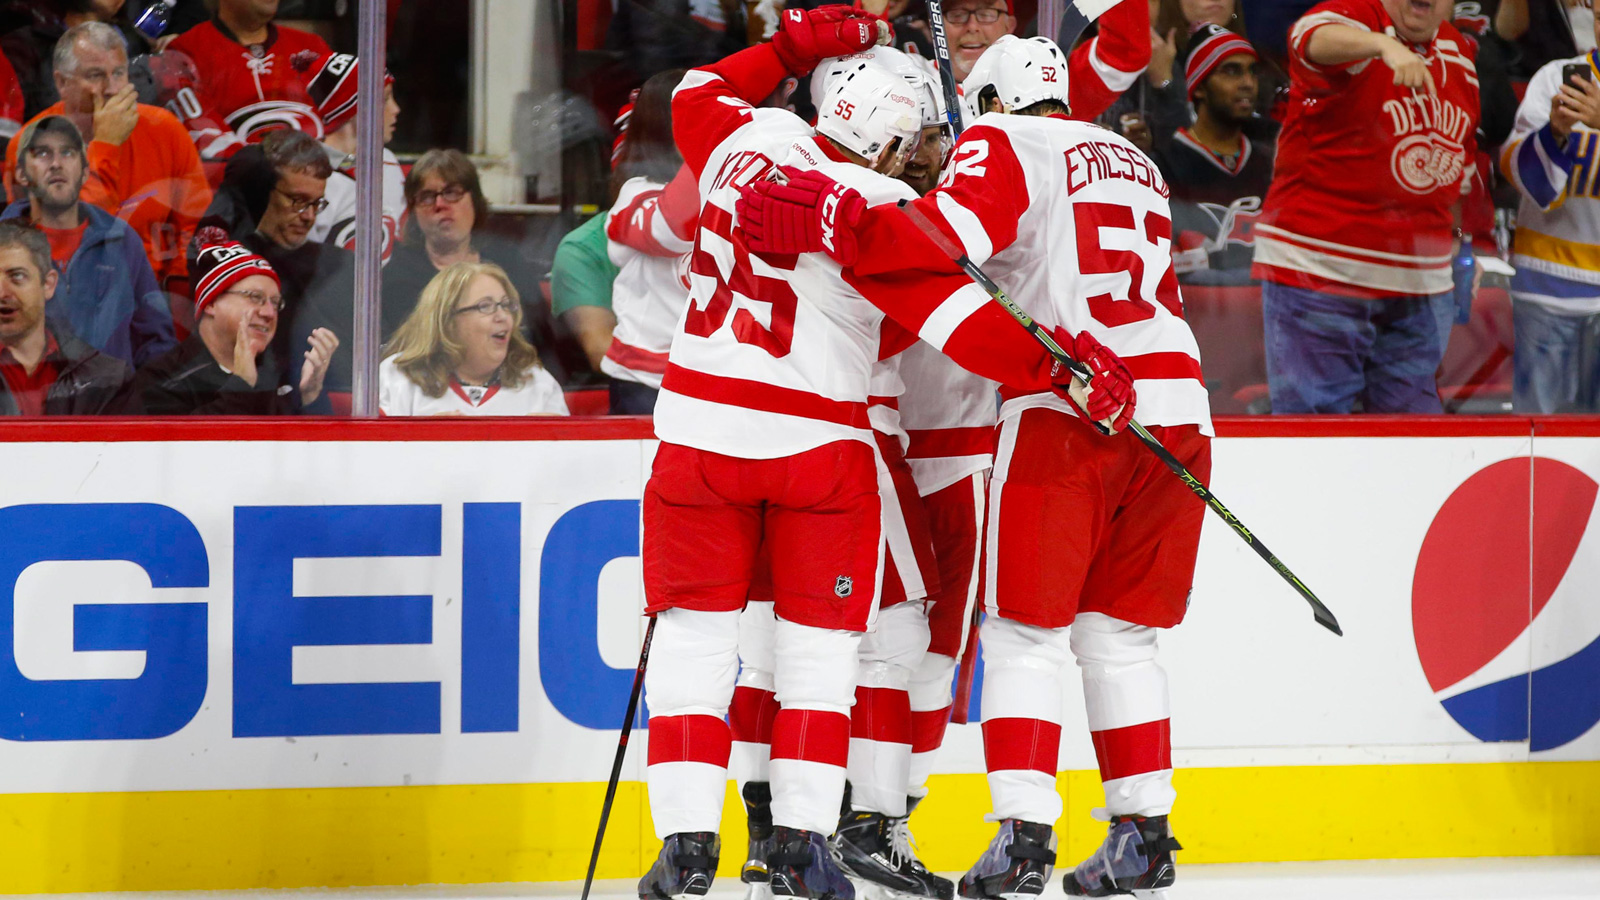 Pulkkinen scores two, Red Wings beat Hurricanes 4-3